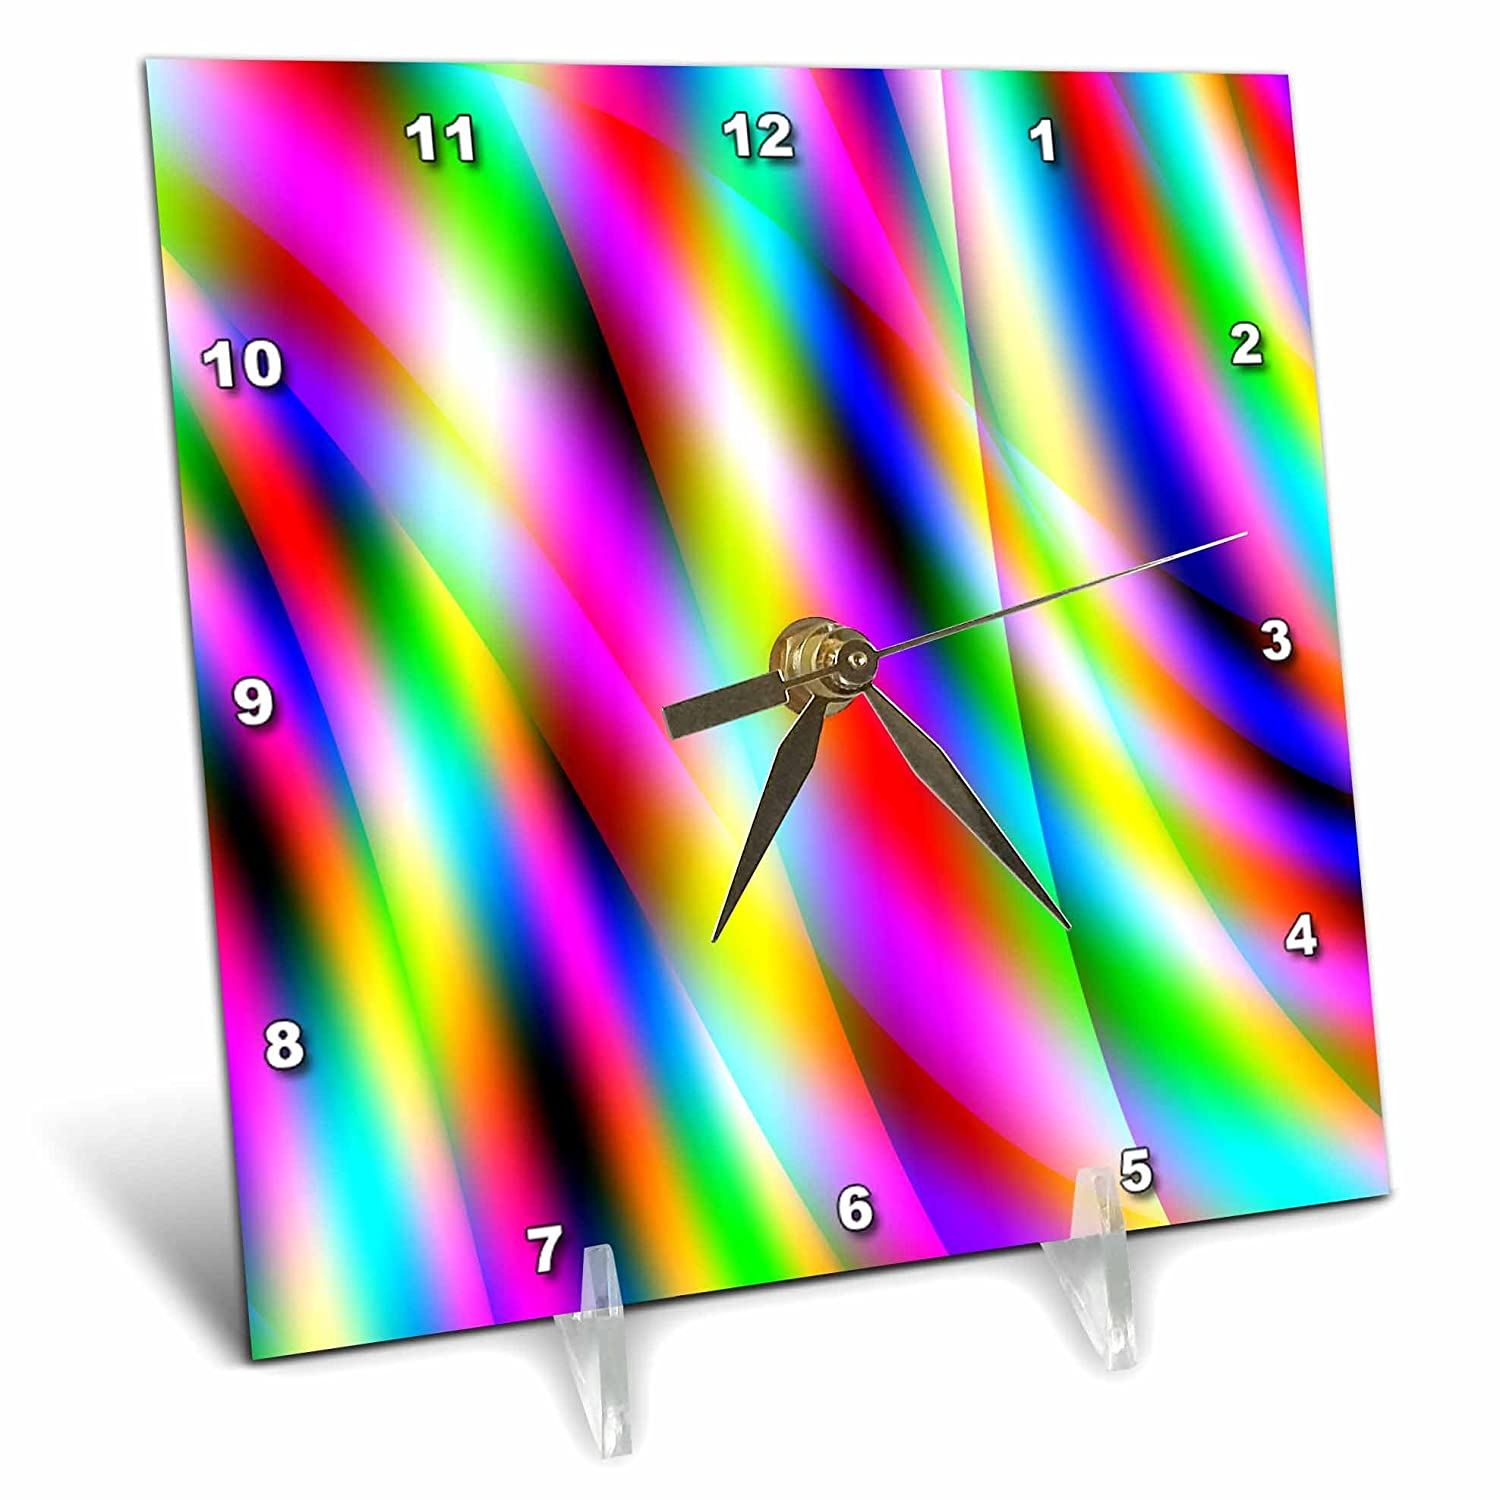 3dRose dc_130409_1 Abstract in Multi-Color by Angel and Spot-Desk Clock, 6 by 6-Inch